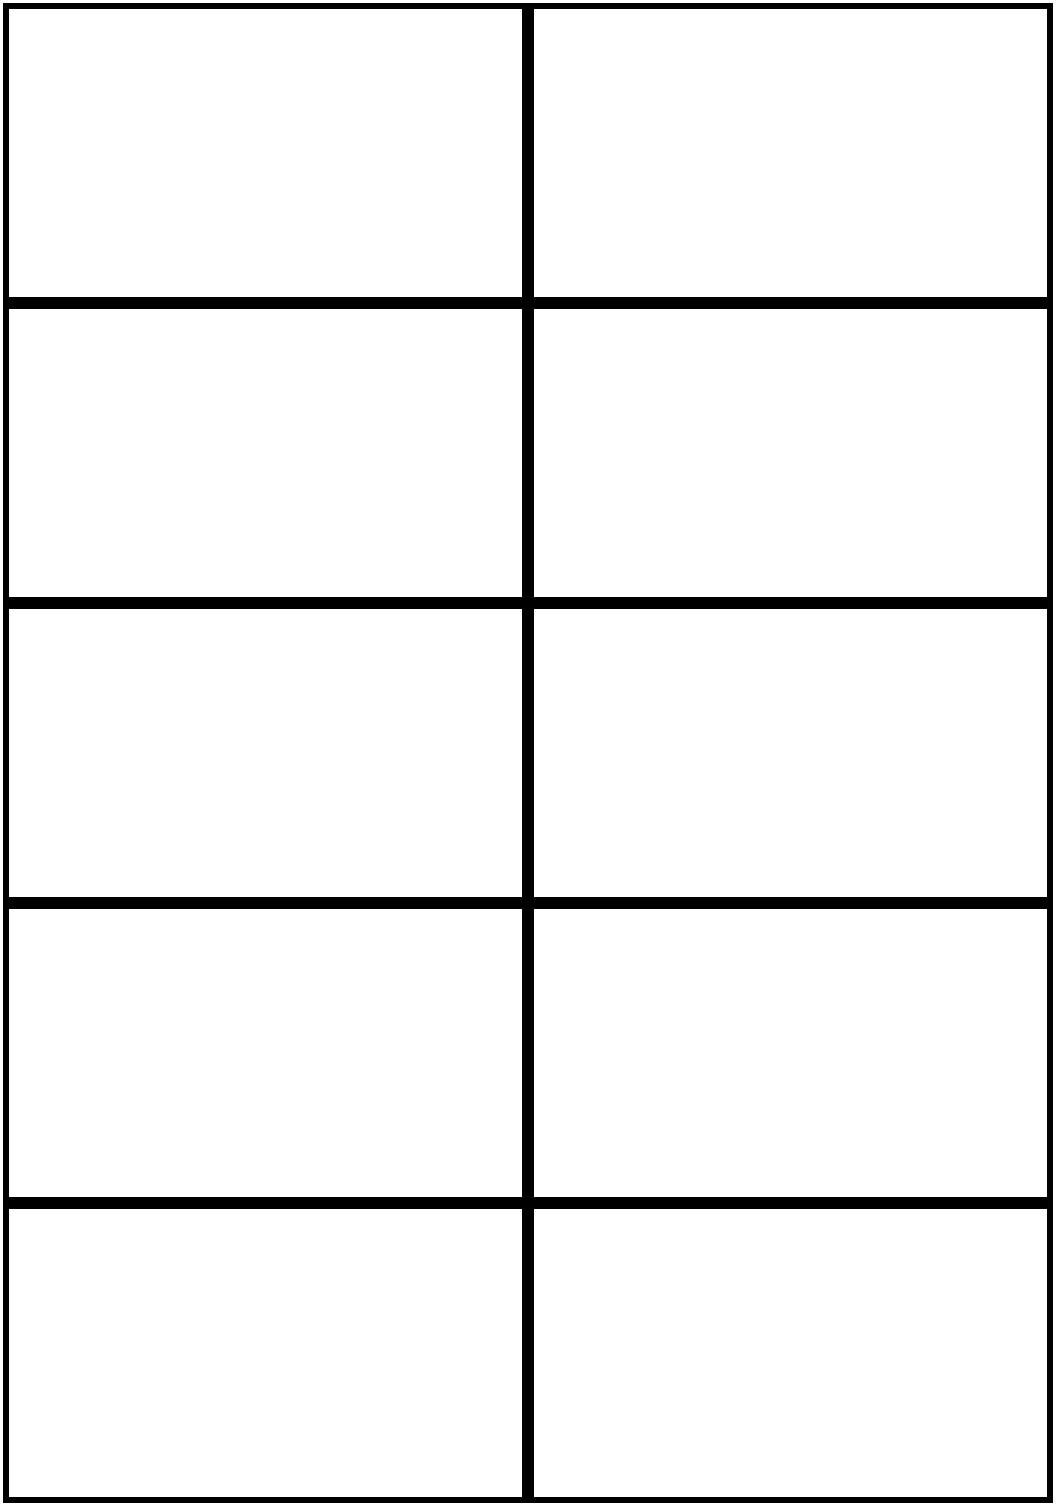 Image Result For Flashcards Template Word | Card Templates